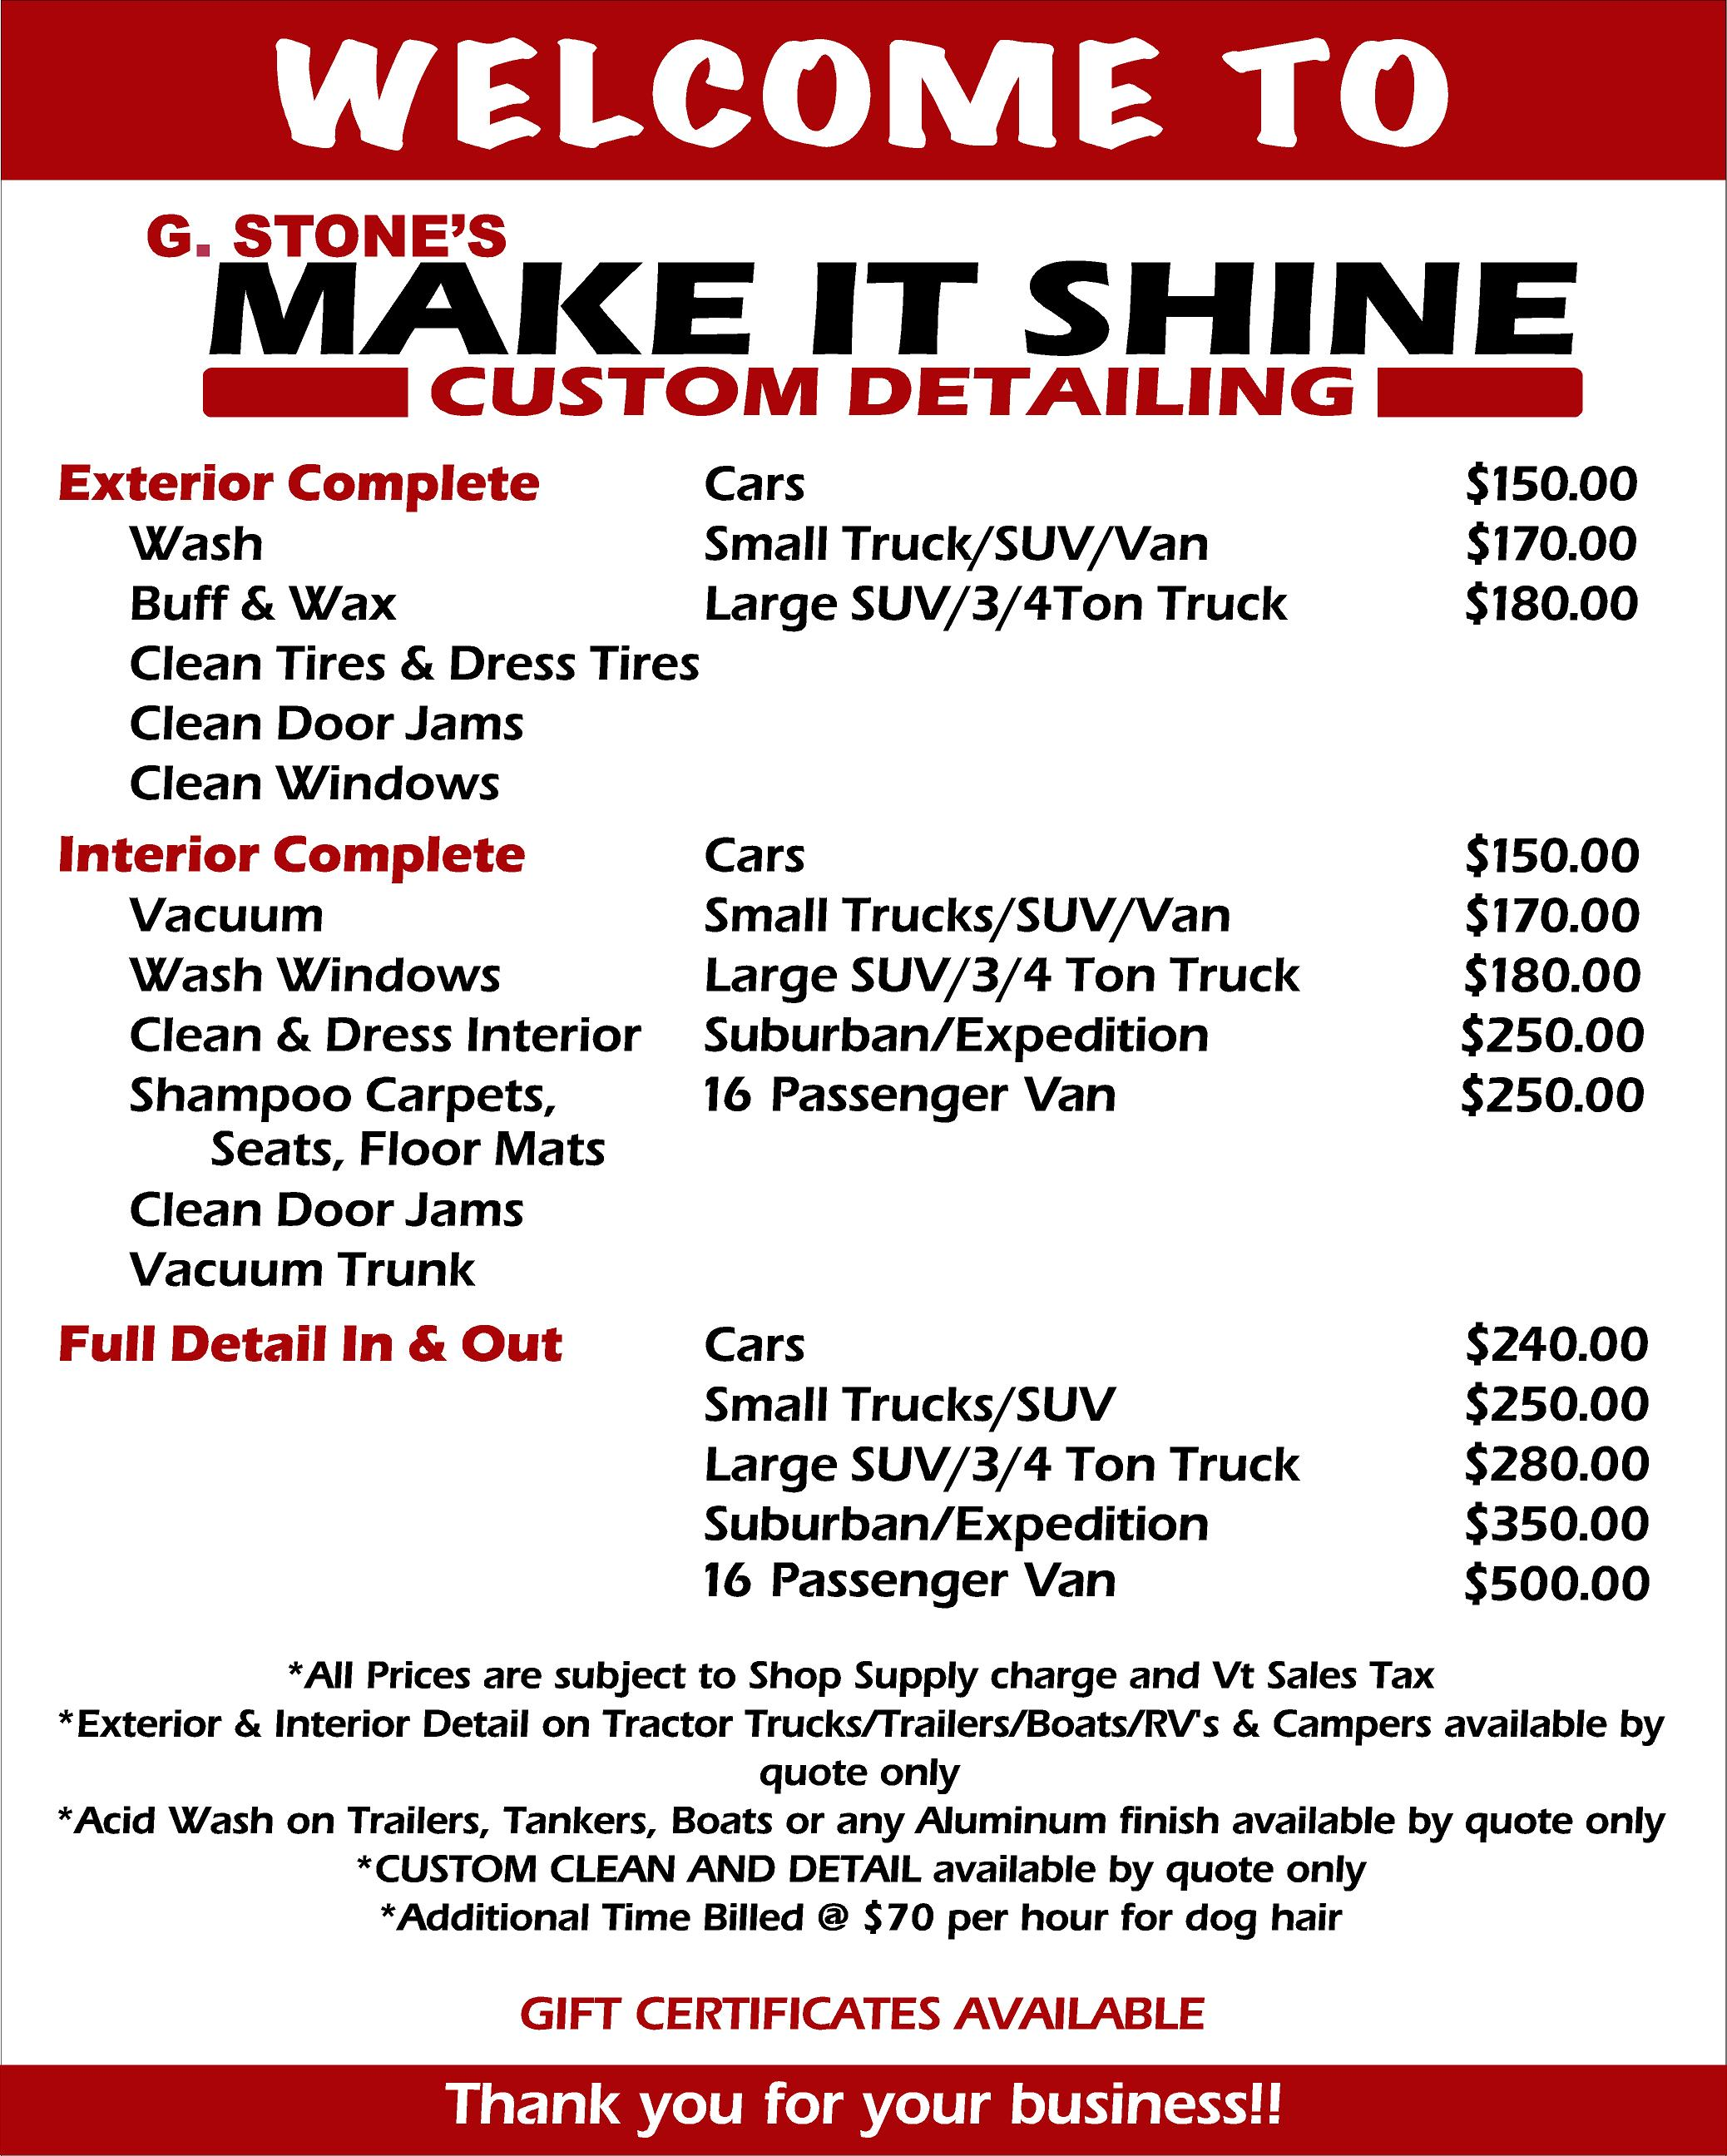 Make It Shine - Prices.jpg